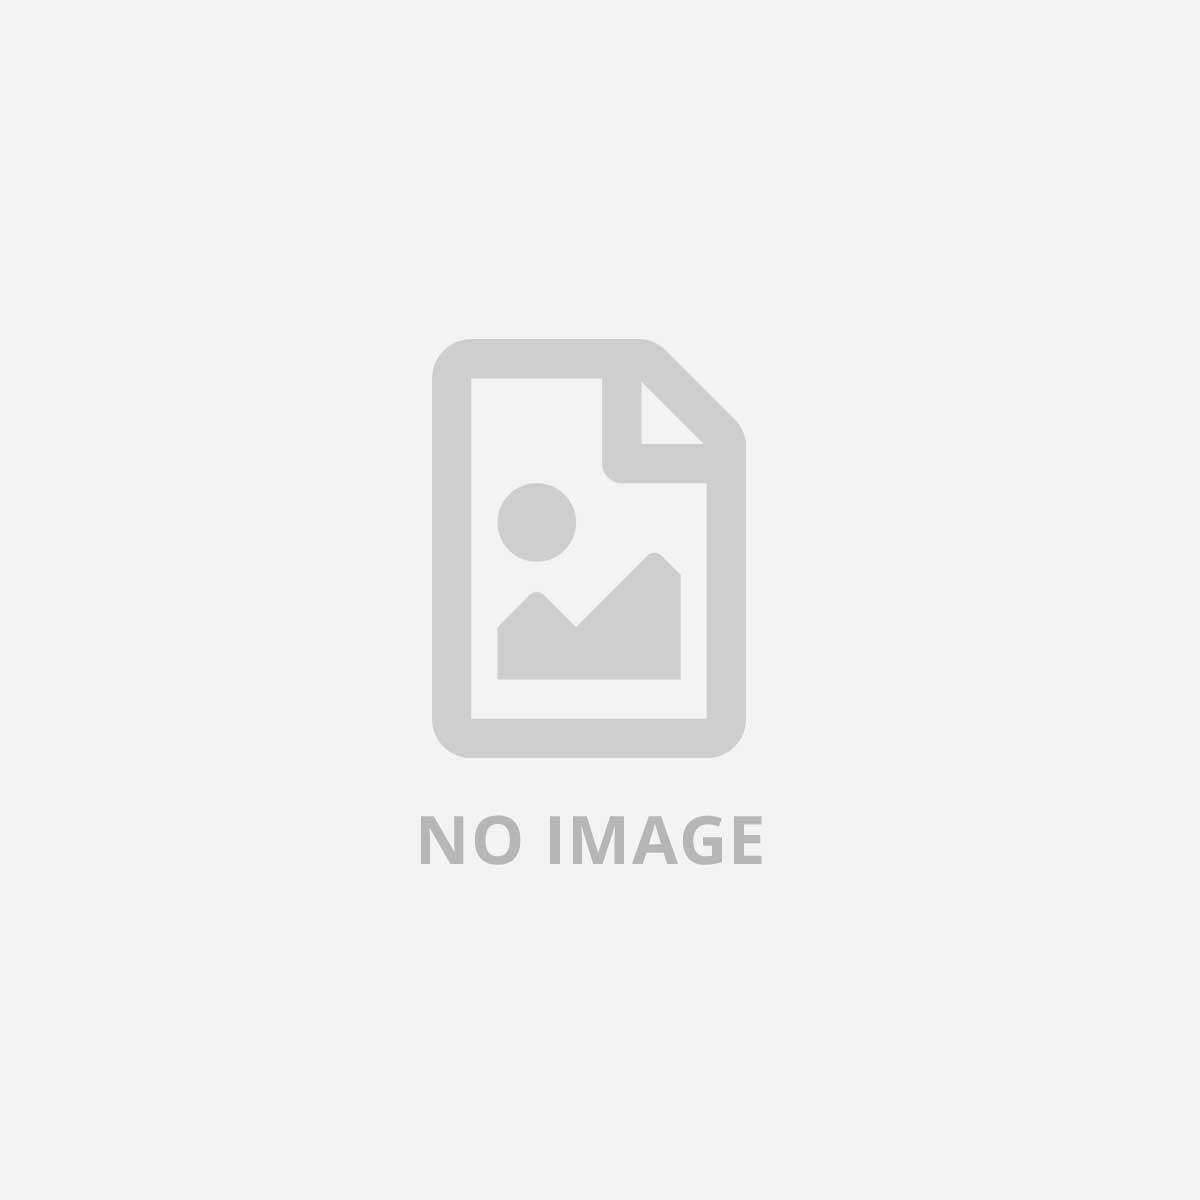 AMD 6-SERIES 3500MHZ 2 CORE